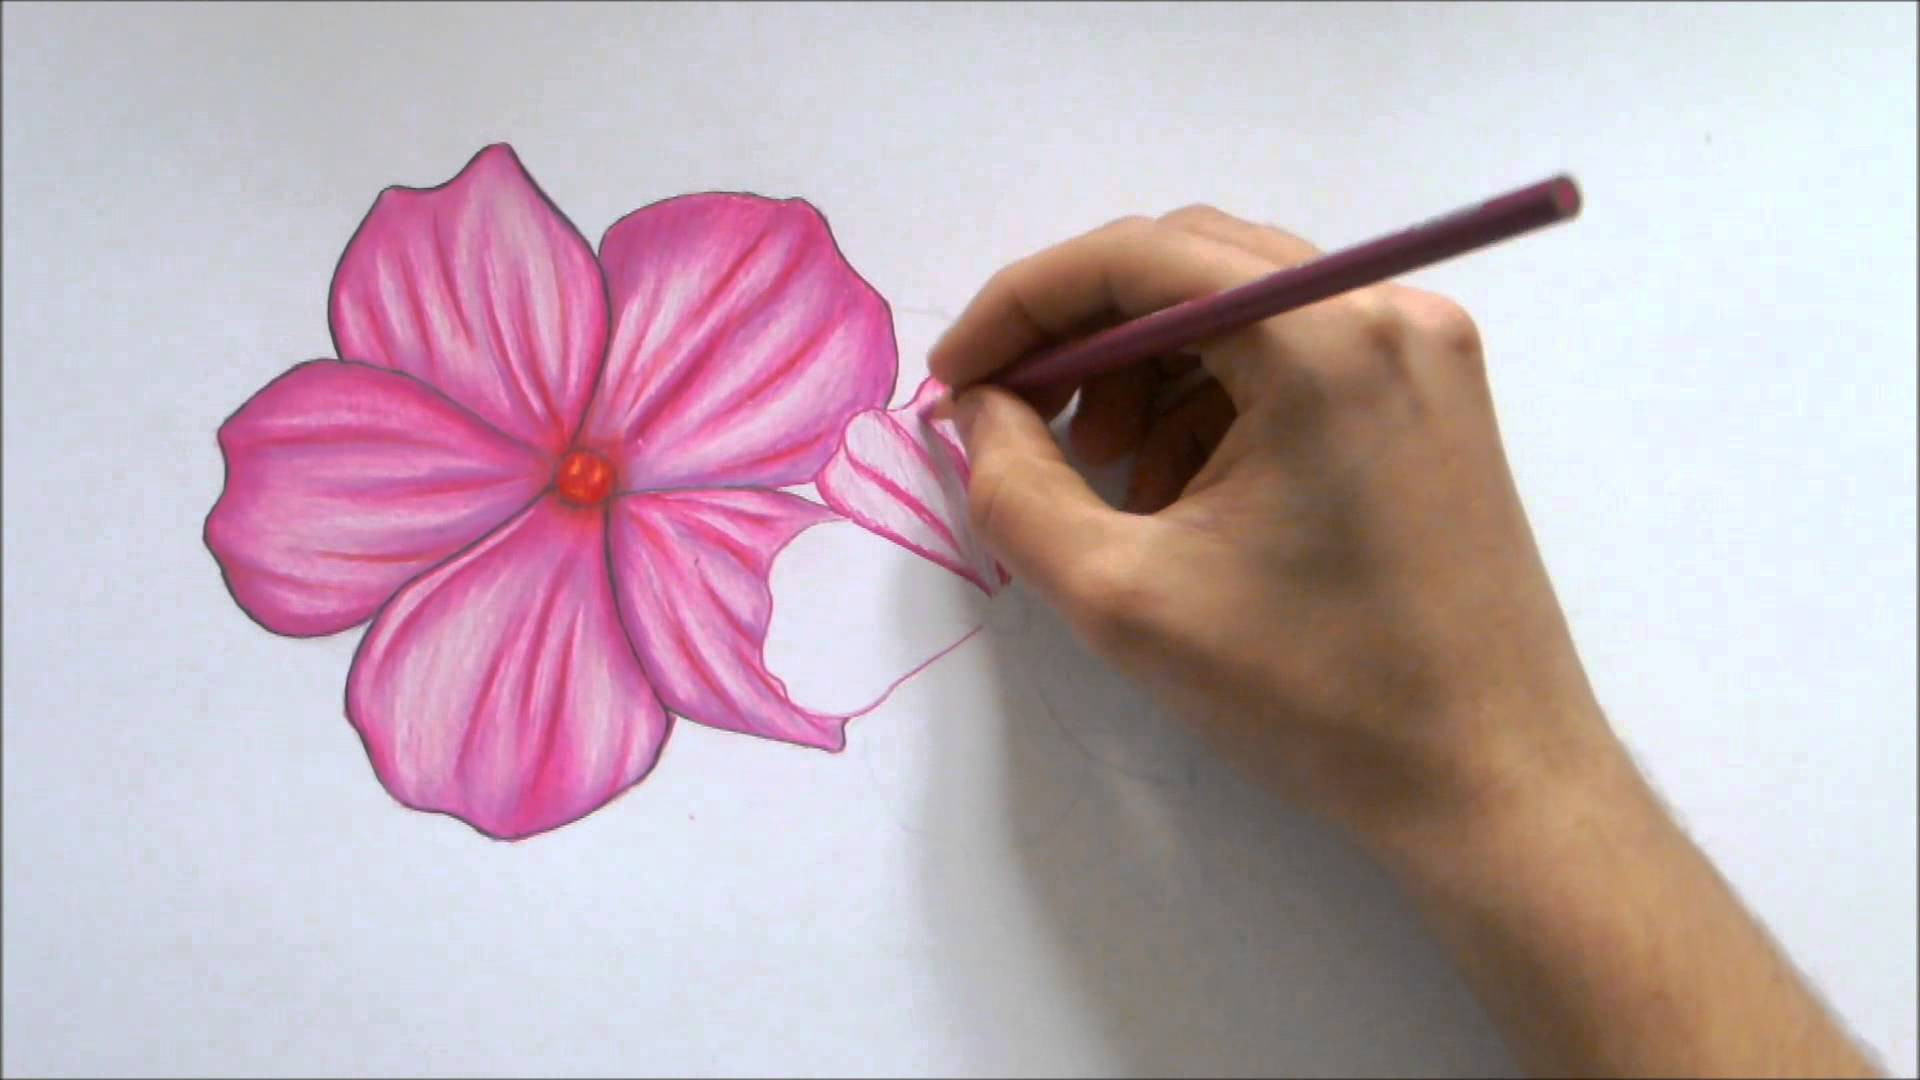 Drawn orchid hand drawn Color A Flower Pencil Color